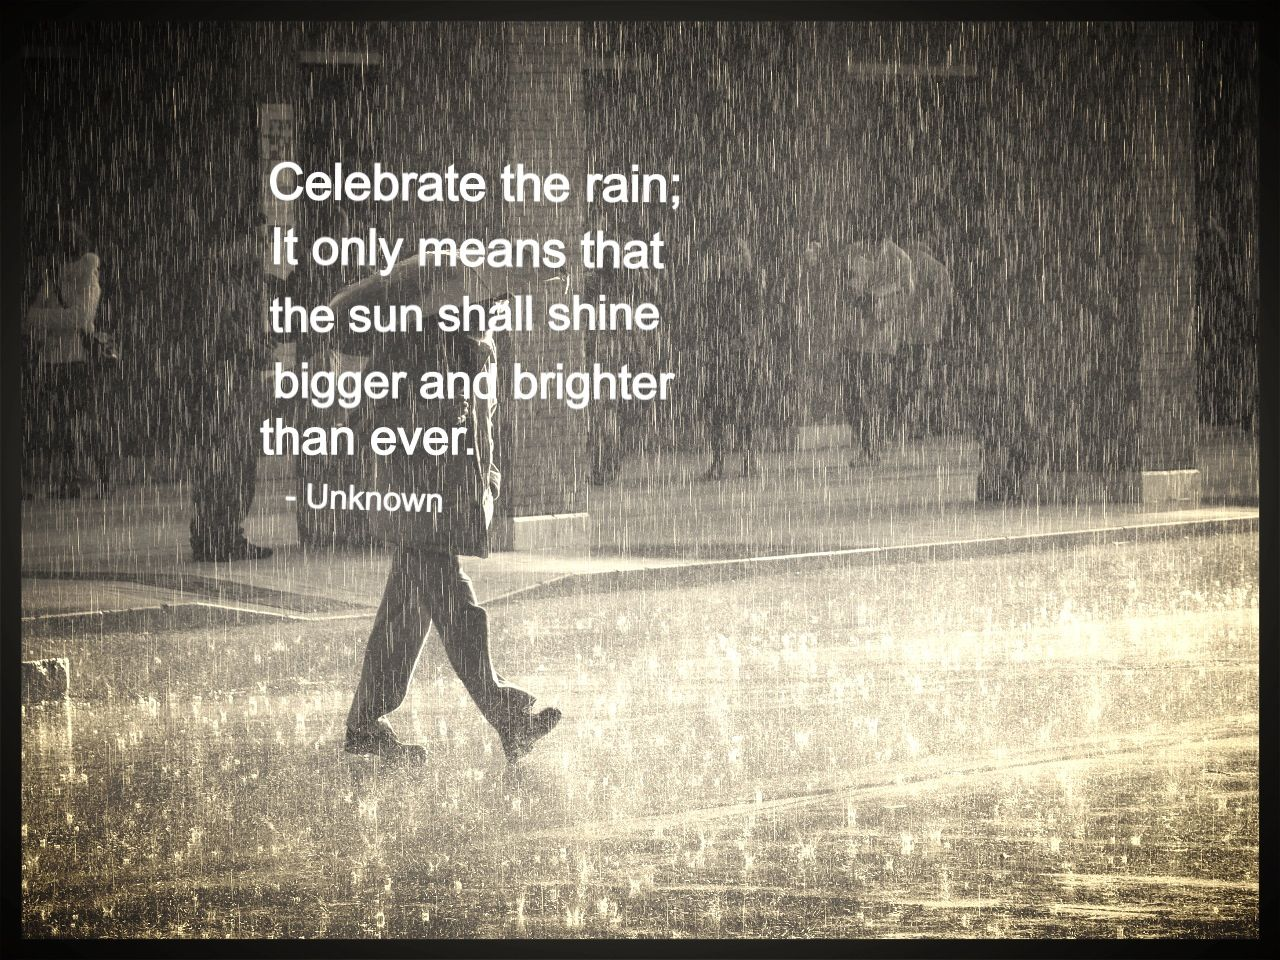 Im loving the rain today, and moreso being on pinterest!